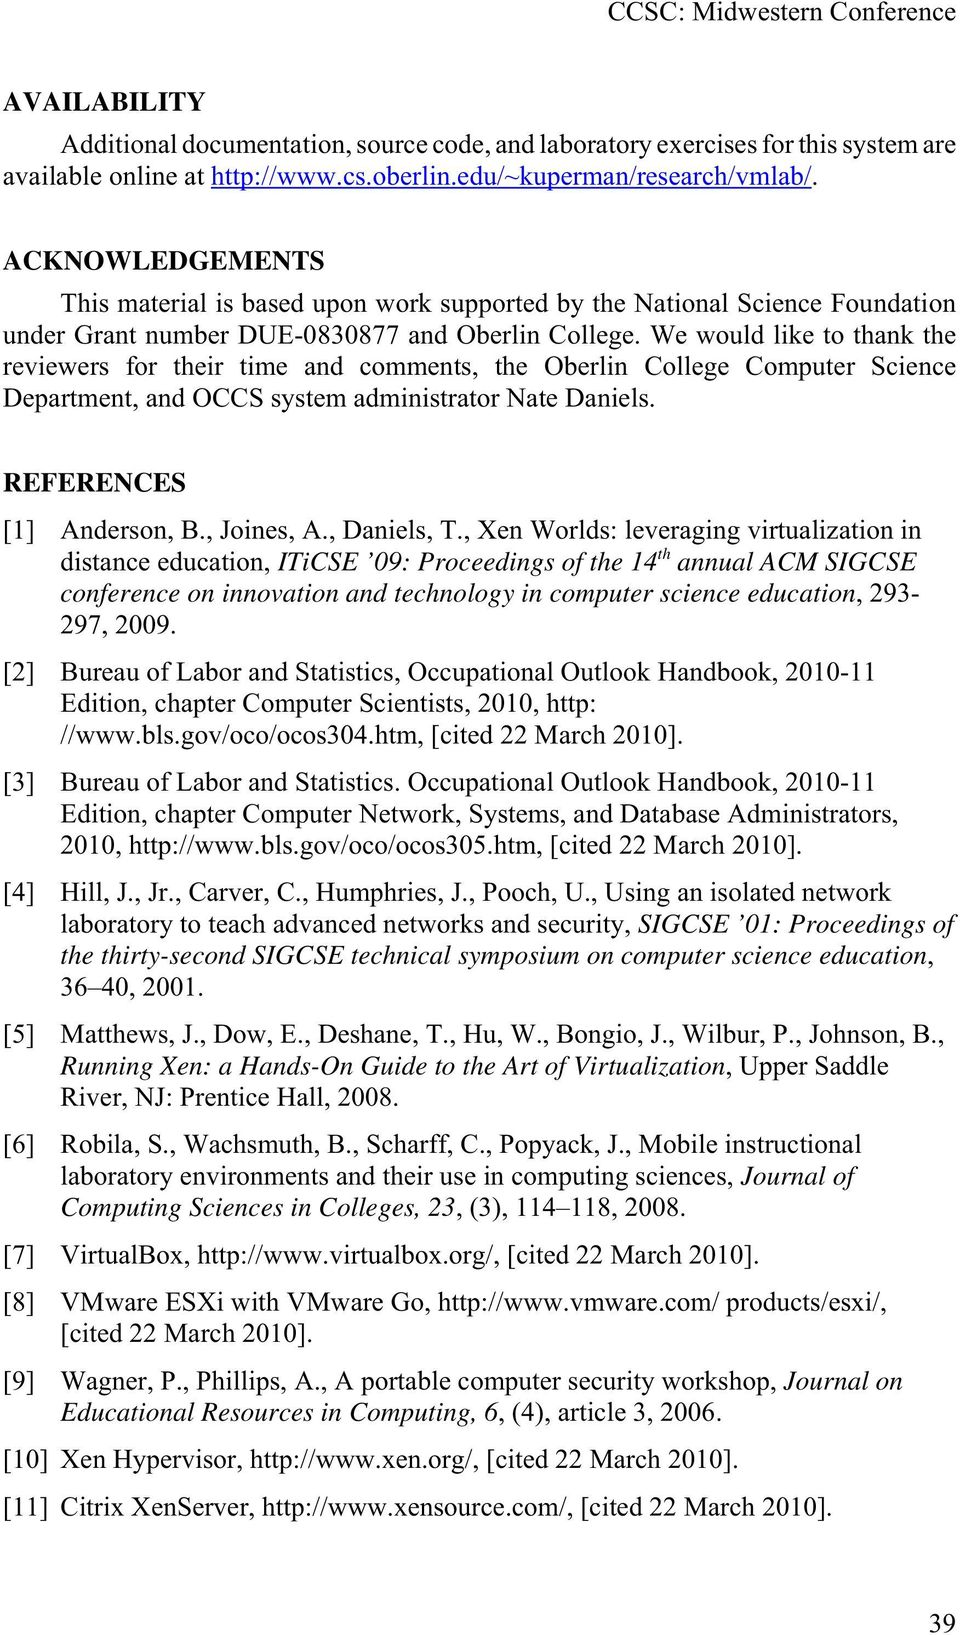 We would like to thank the reviewers for their time and comments, the Oberlin College Computer Science Department, and OCCS system administrator Nate Daniels. REFERENCES [1] Anderson, B., Joines, A.